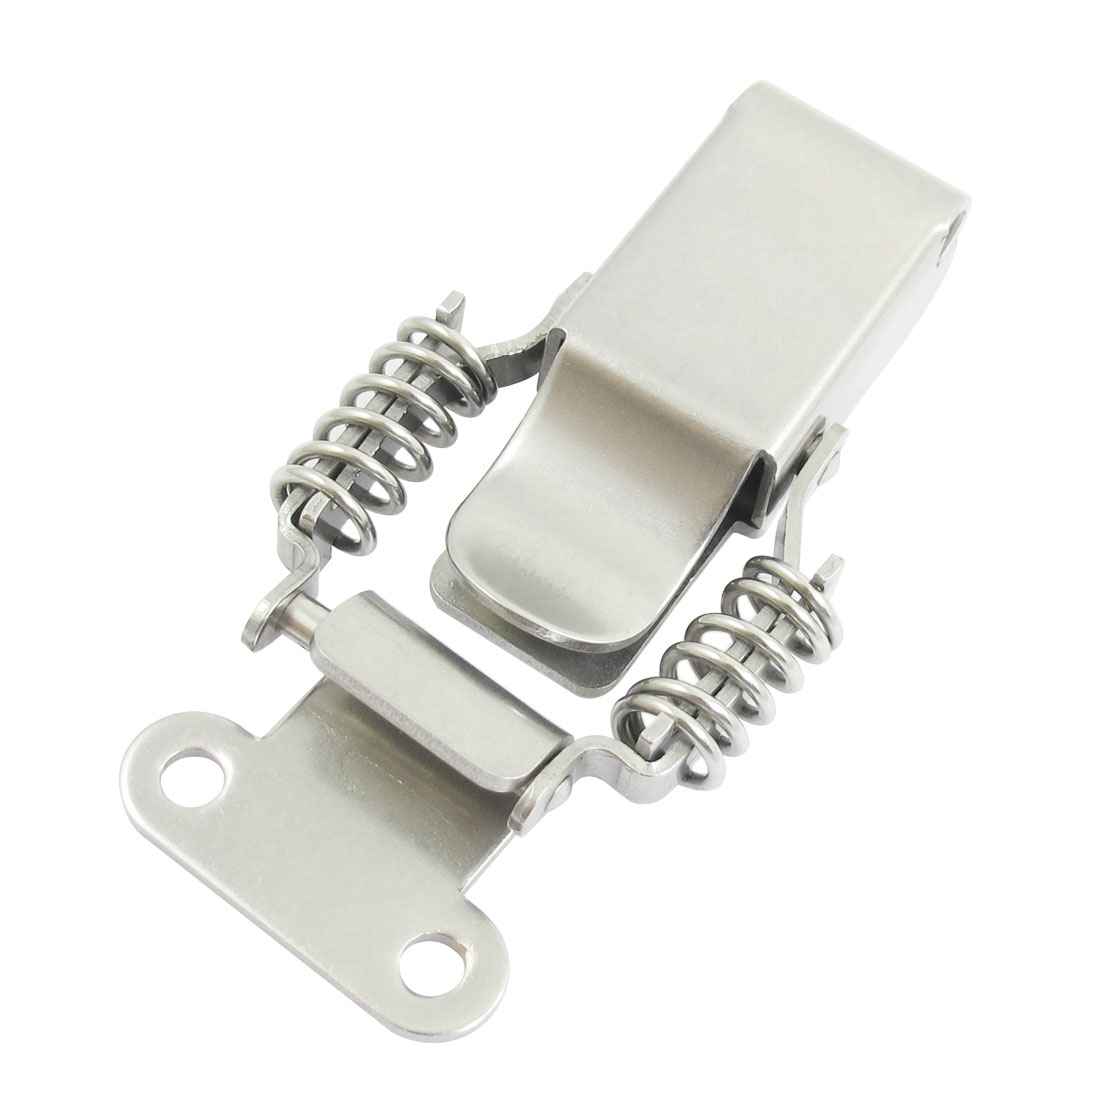 "Fittings 3.7"" Compression Spring Loaded Stainless Steel Toggle Latch Catches"